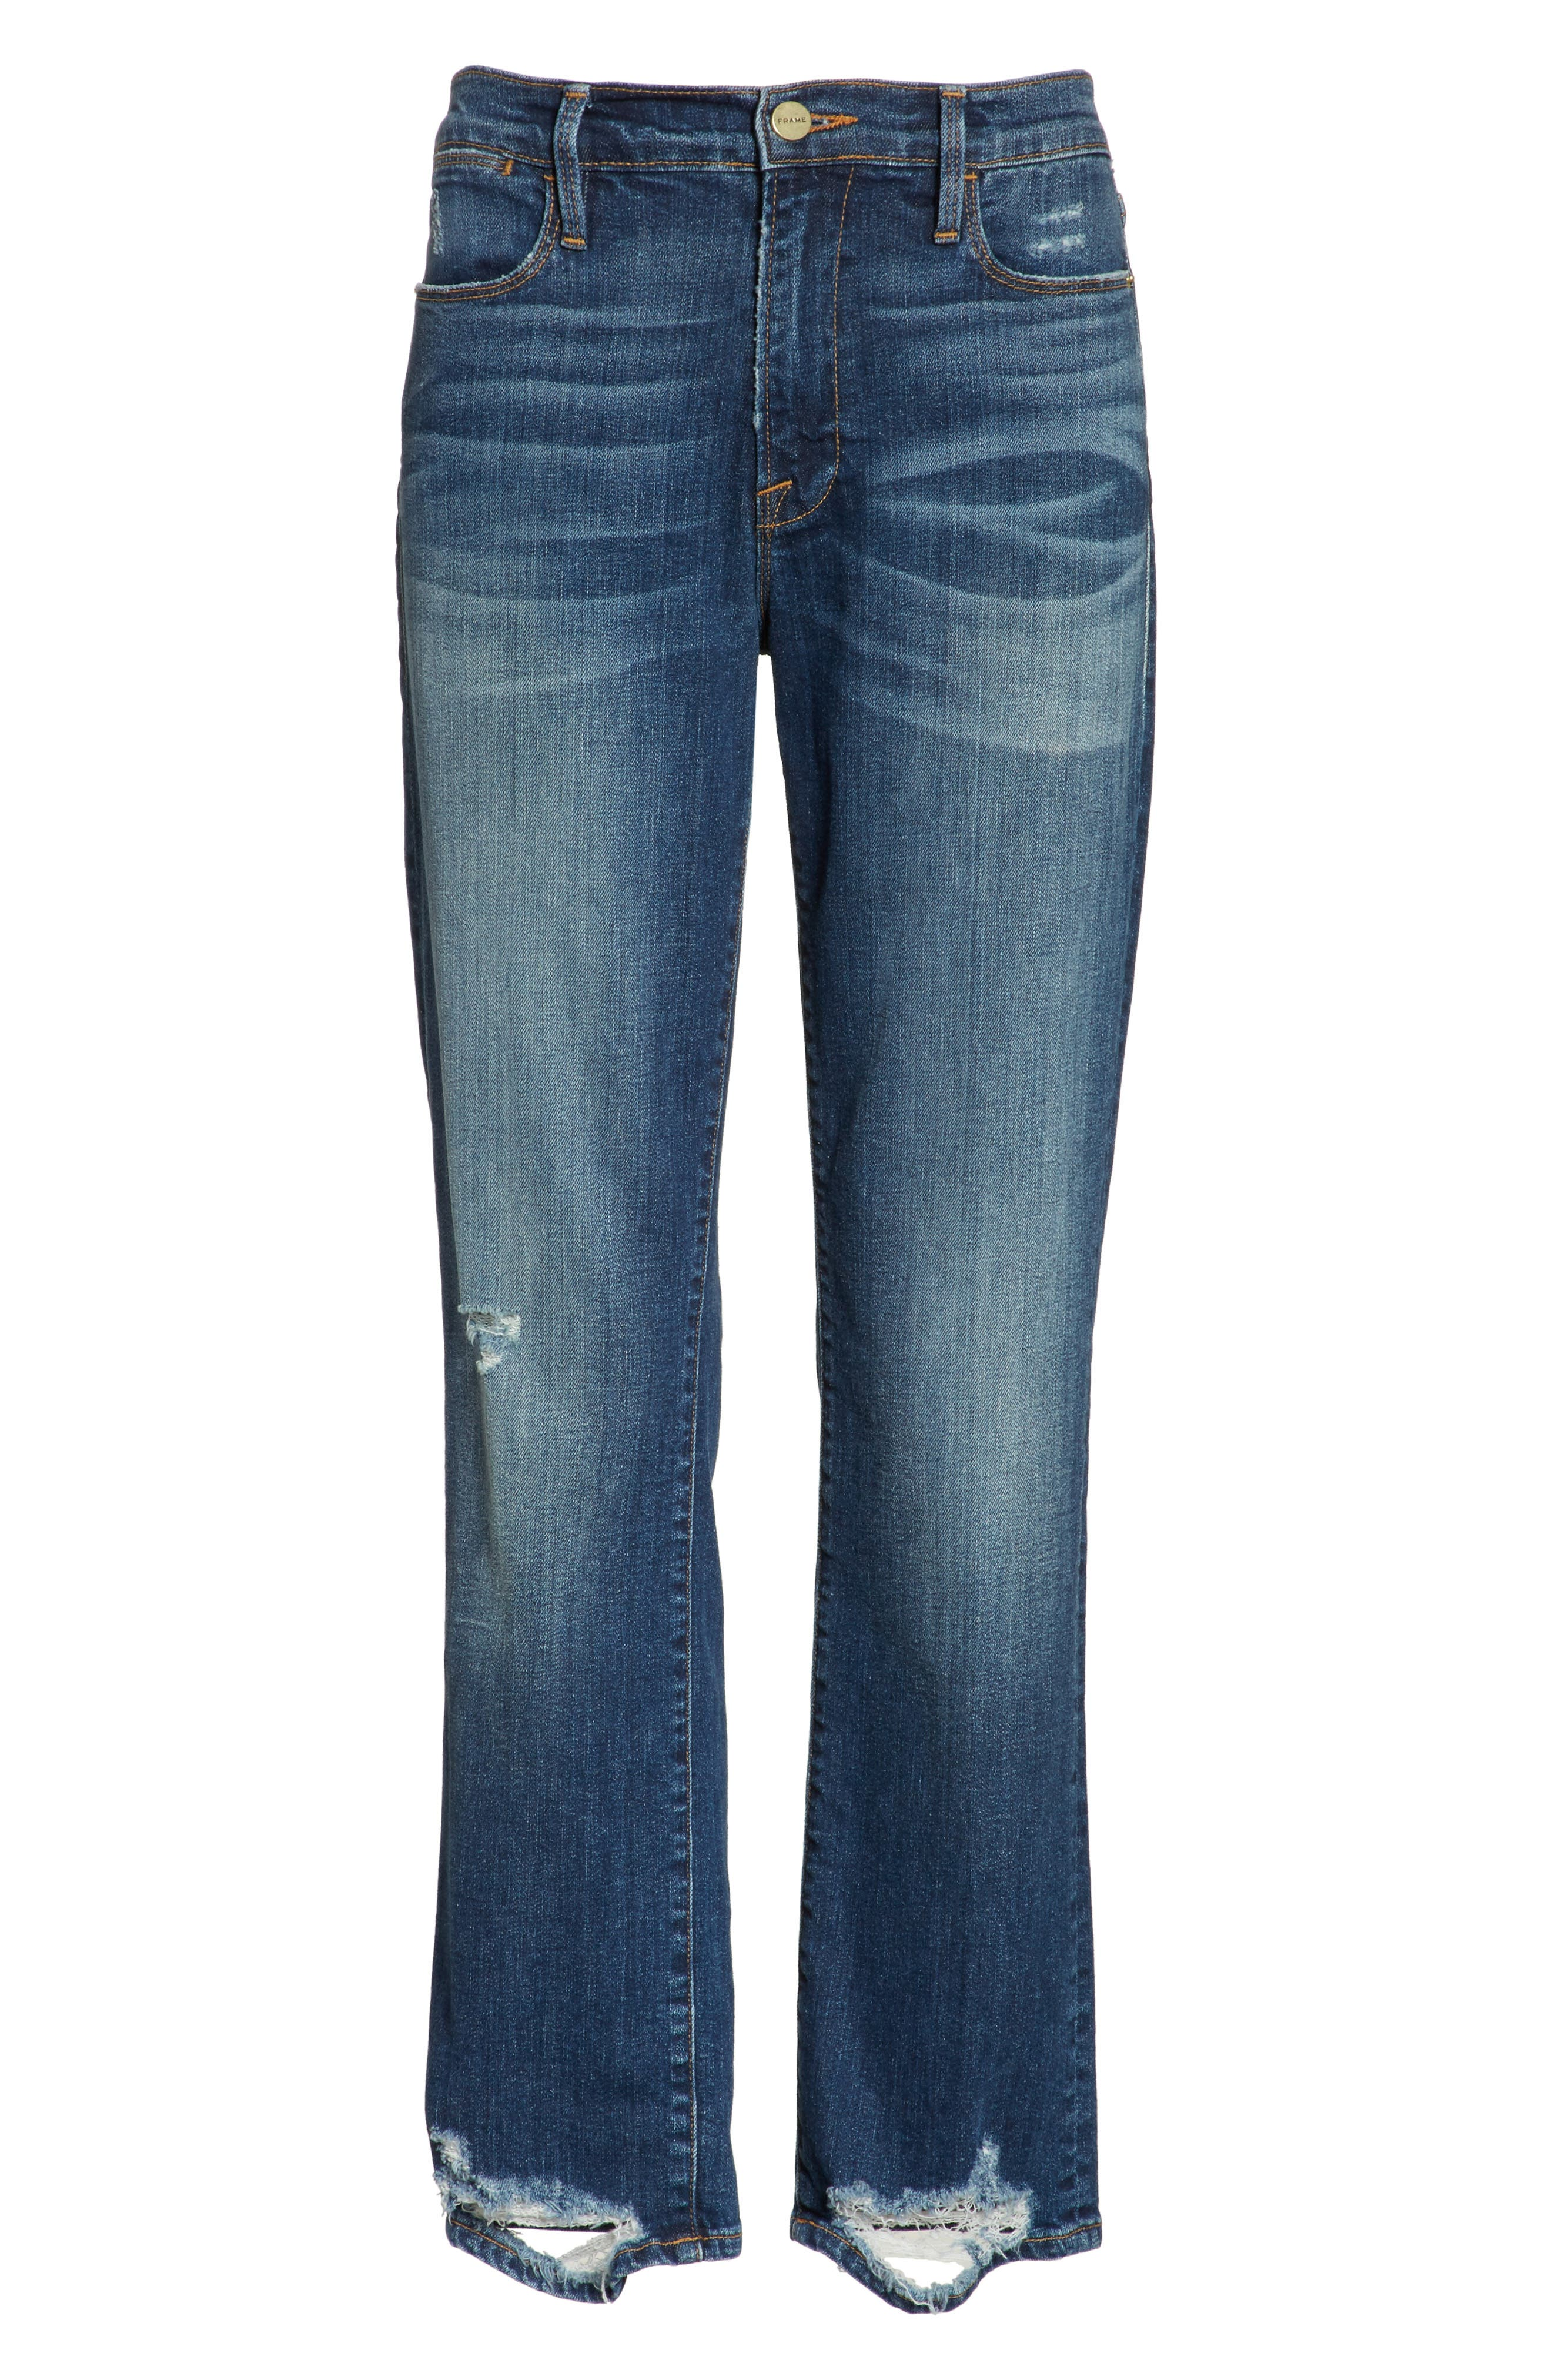 Le High Straight High Rise Jeans,                             Alternate thumbnail 6, color,                             402